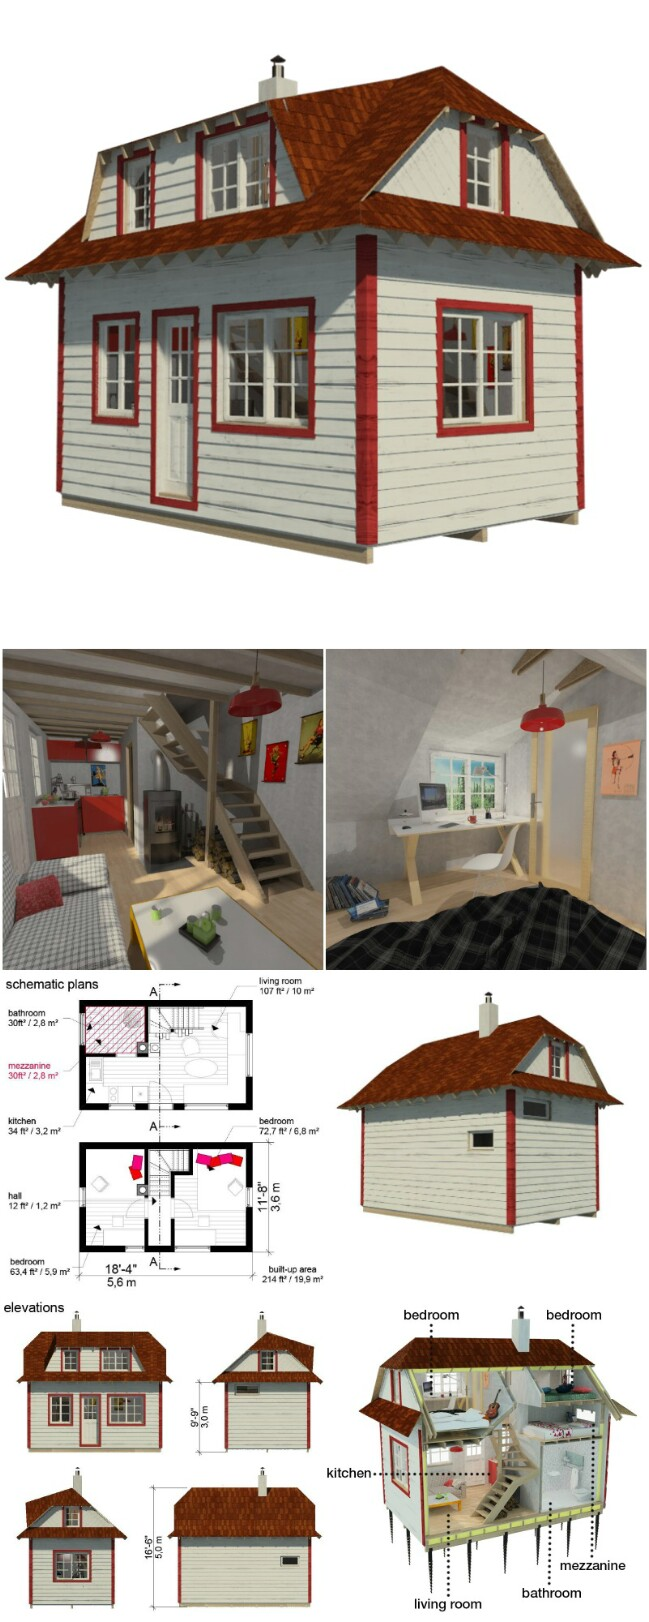 25 Plans To Build Your Own Fully Customized Tiny House On